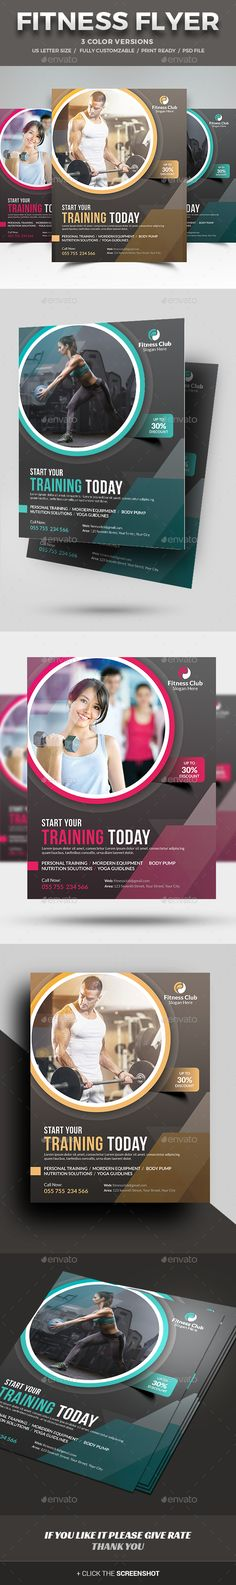 Fitness Flyer Template PSD